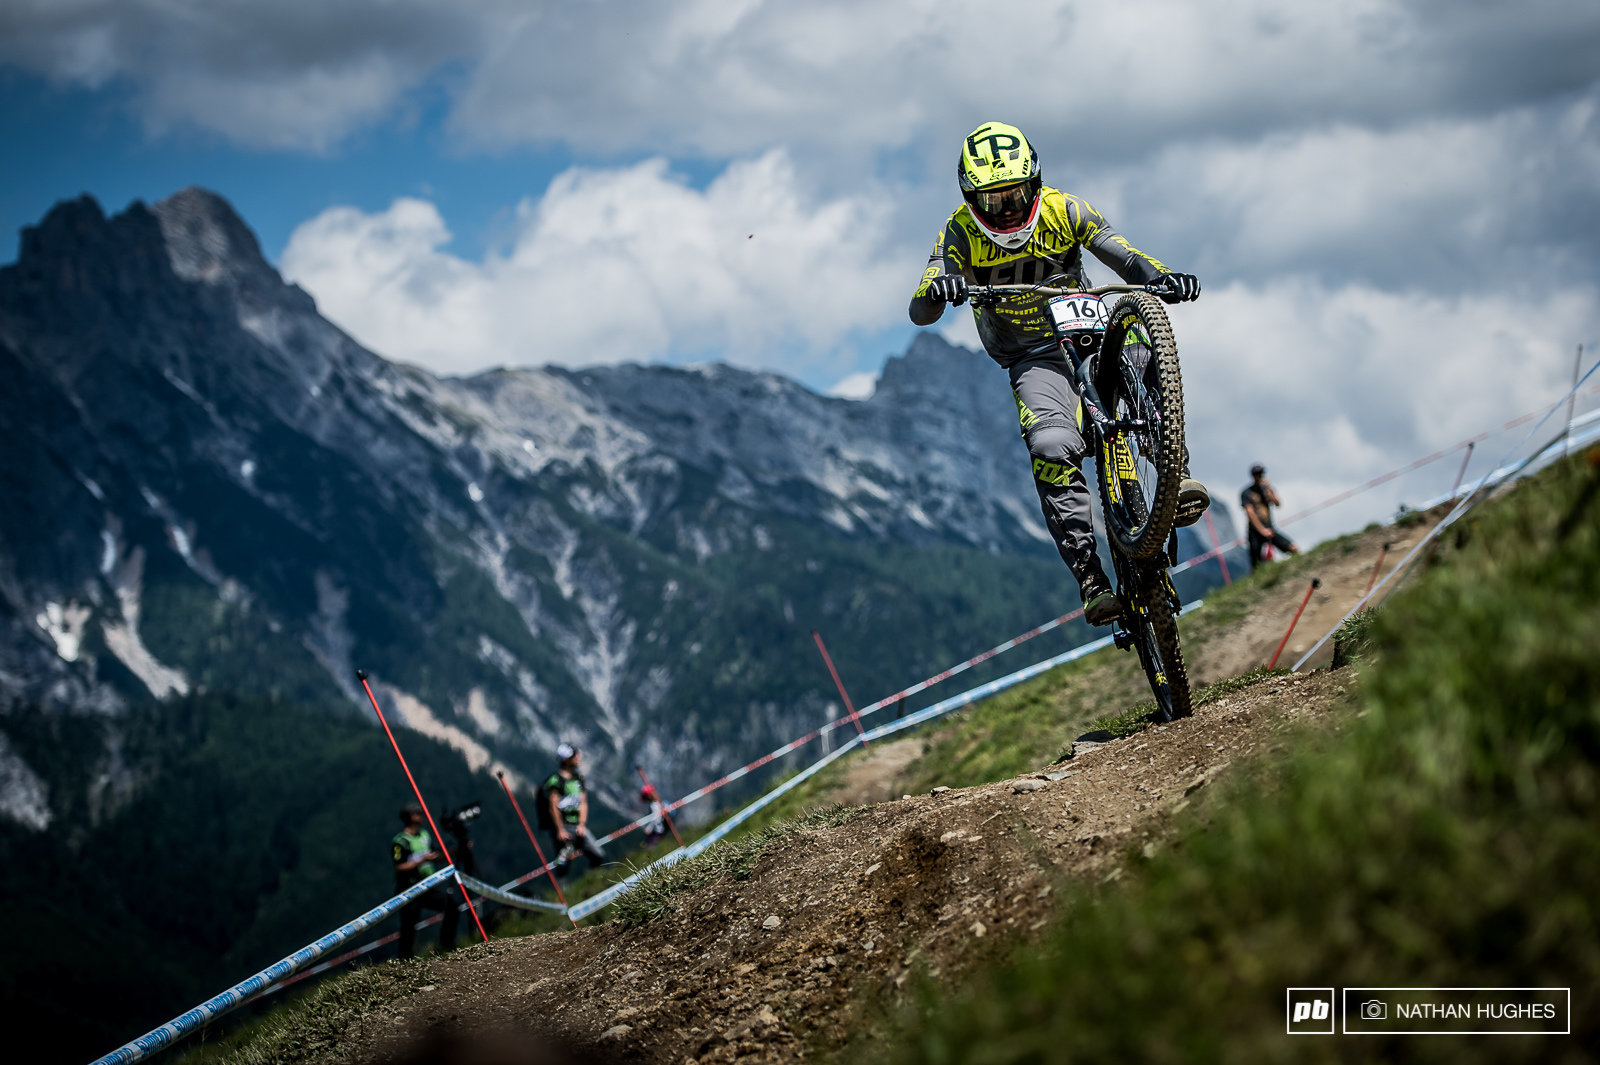 Third place for Remi Thirion here last year second fastest TT this afternoon. The place clearly suits him and you can bet he s ready to tear the Leogang course a new one if it rains.